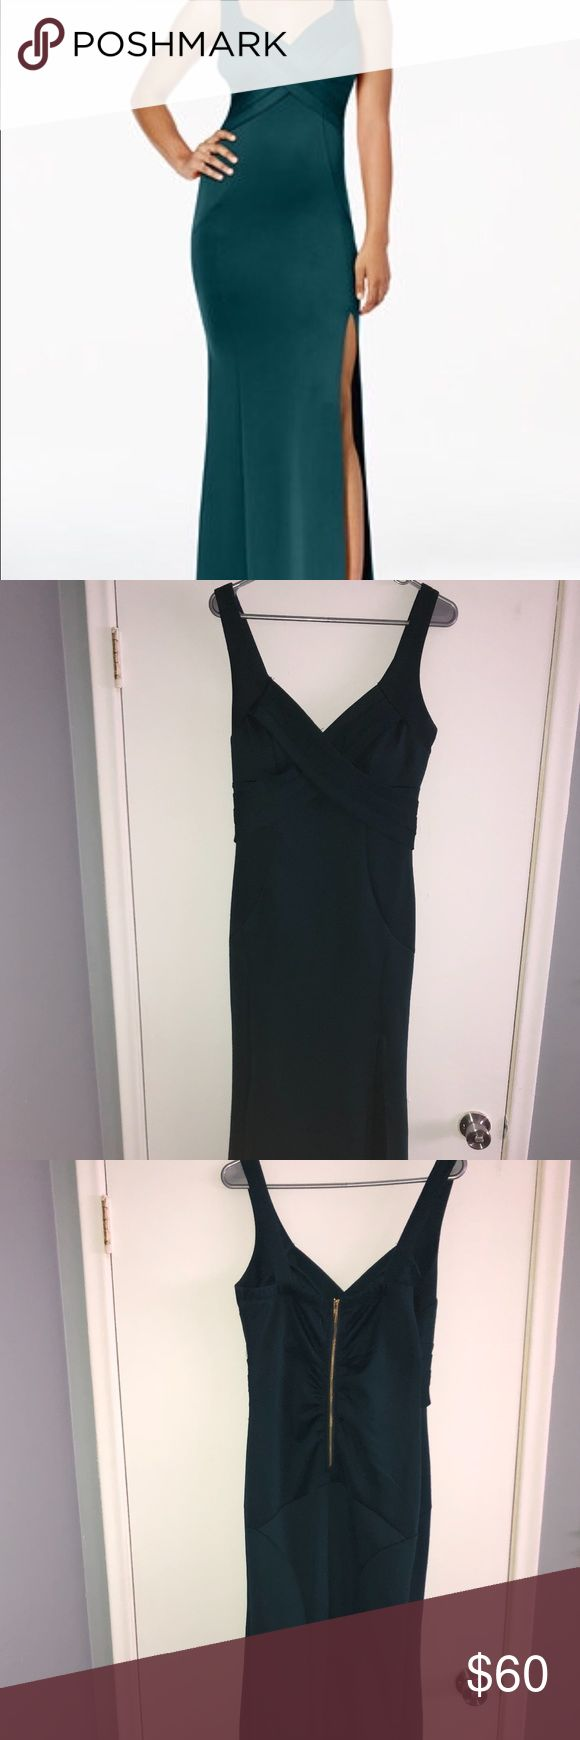 Emerald Green Gown Size Large Worn once I am asking $50 obo This is a gorgeous A-line silhouette, emerald green gown, it has an exposed gold zipper in the back and will show off curves! It has never been altered. Emerald Sundae Dresses Prom